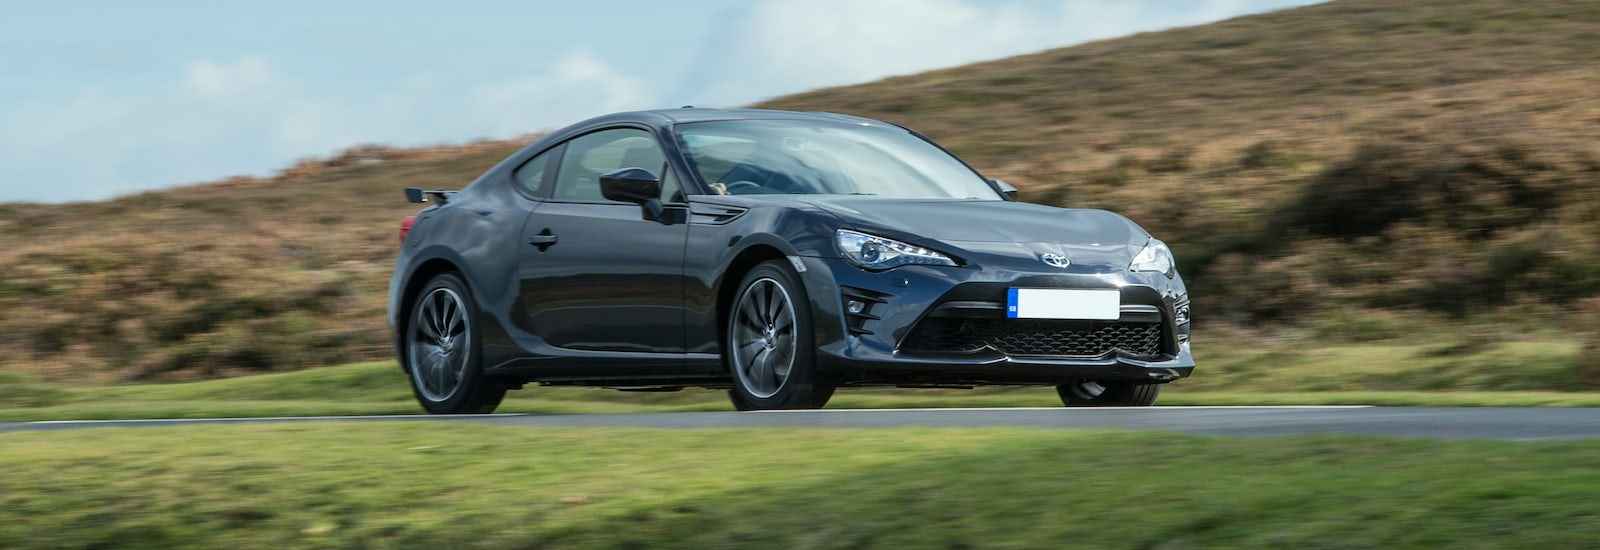 Fairly Priced Sports Cars